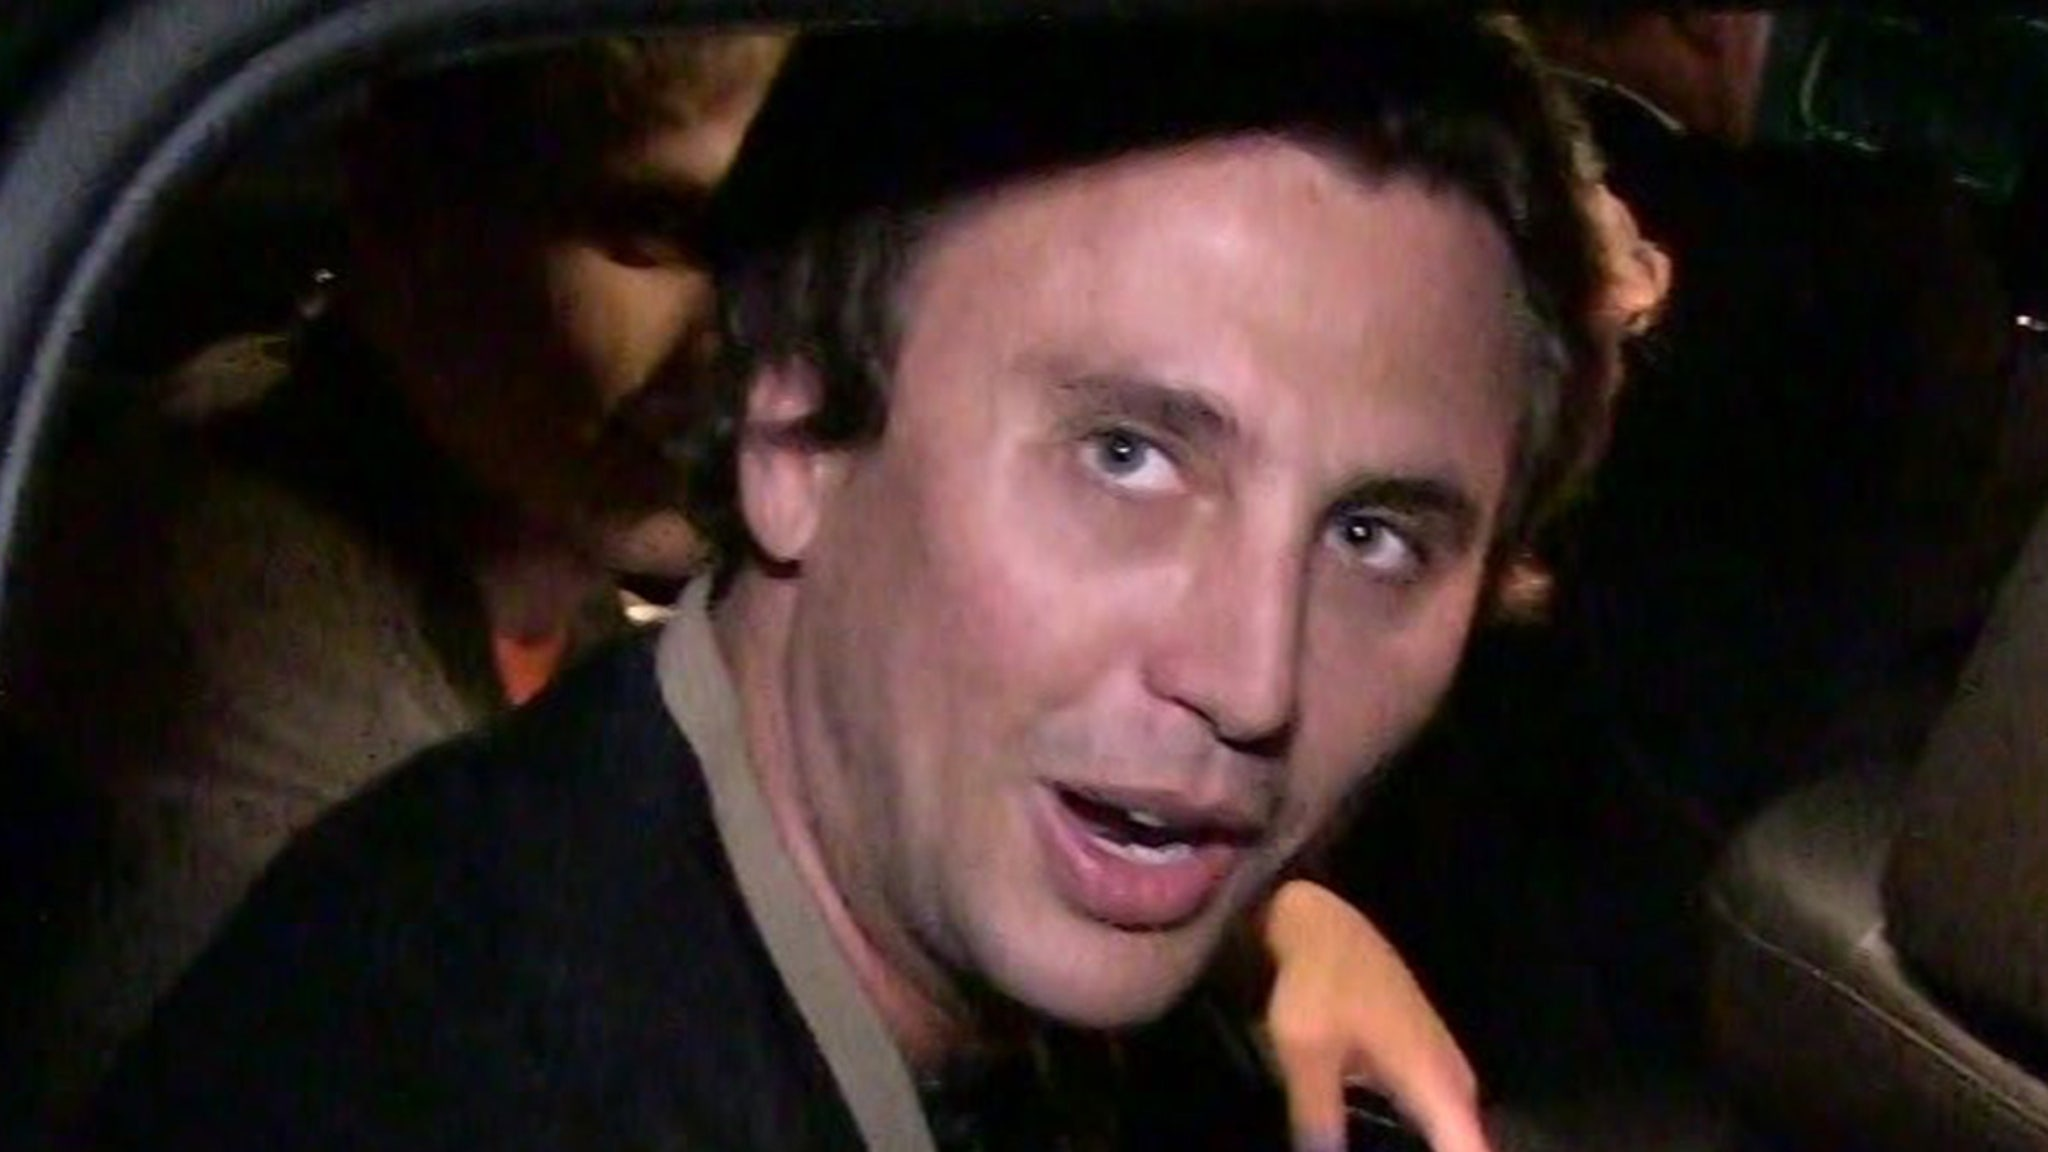 'Foodgod' Jonathan Cheban Claims Robbery at Gunpoint in NJ .... $250k Richard Mille Watch Jacked